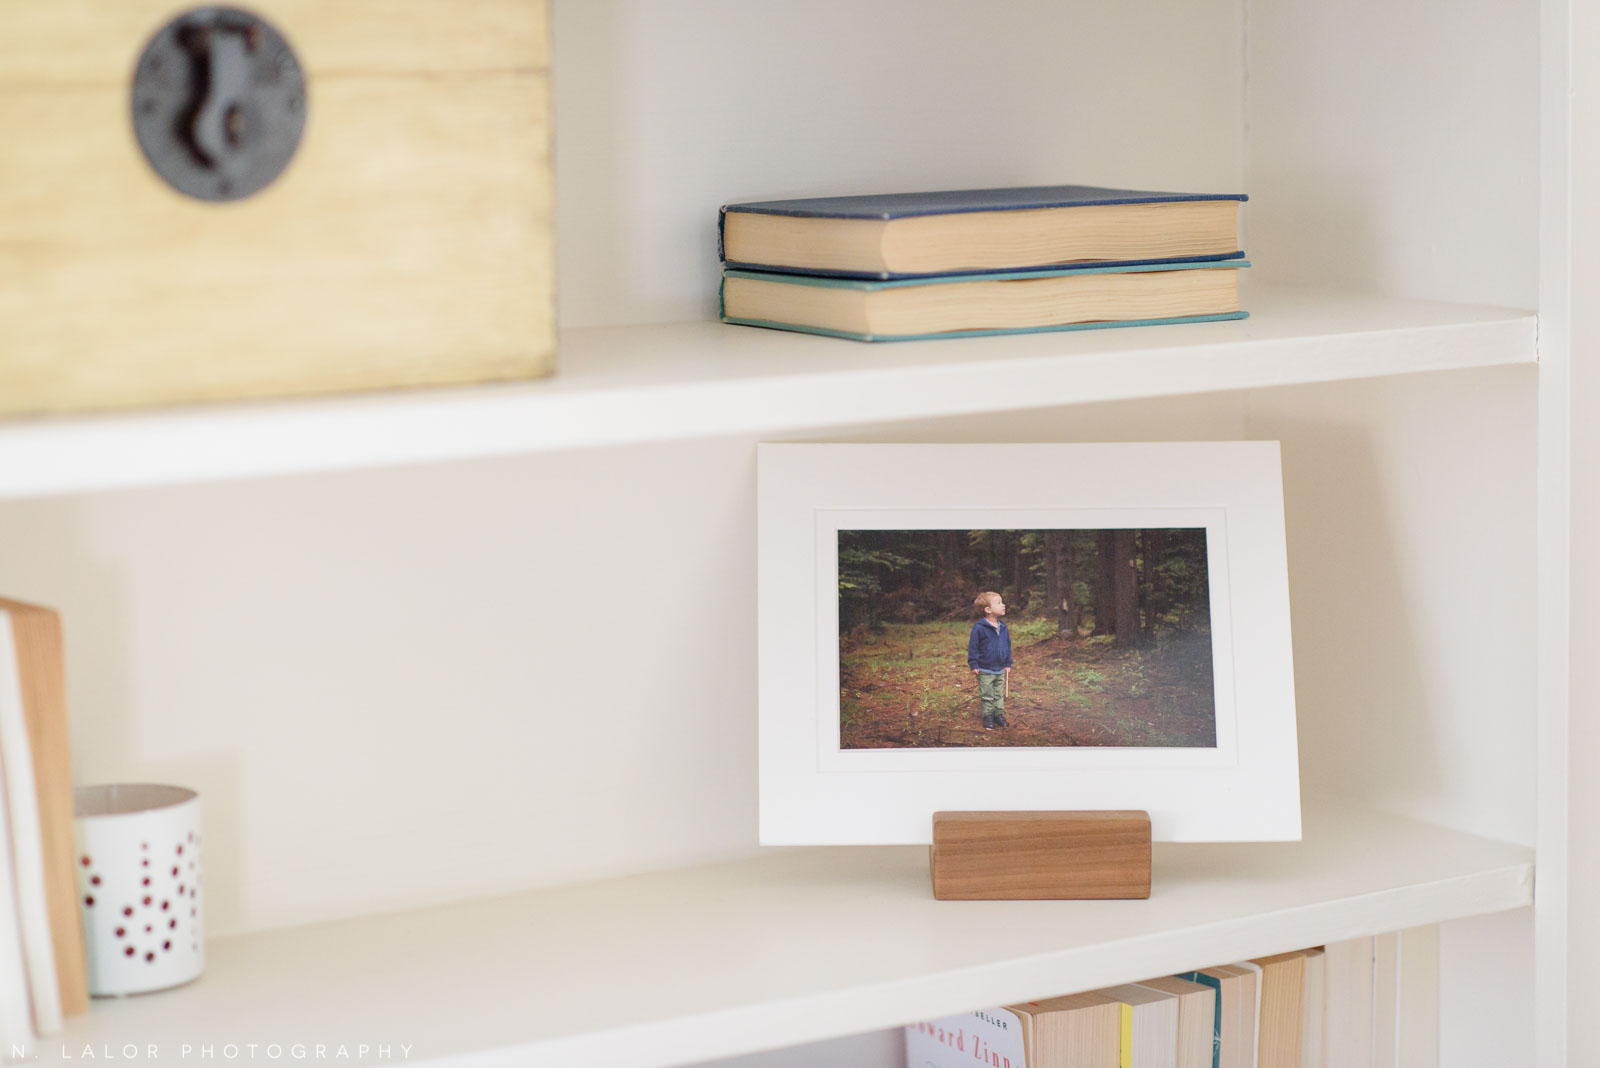 An open-shelf display of a matted photo in a wood stand. Photograph by N. Lalor Photography.